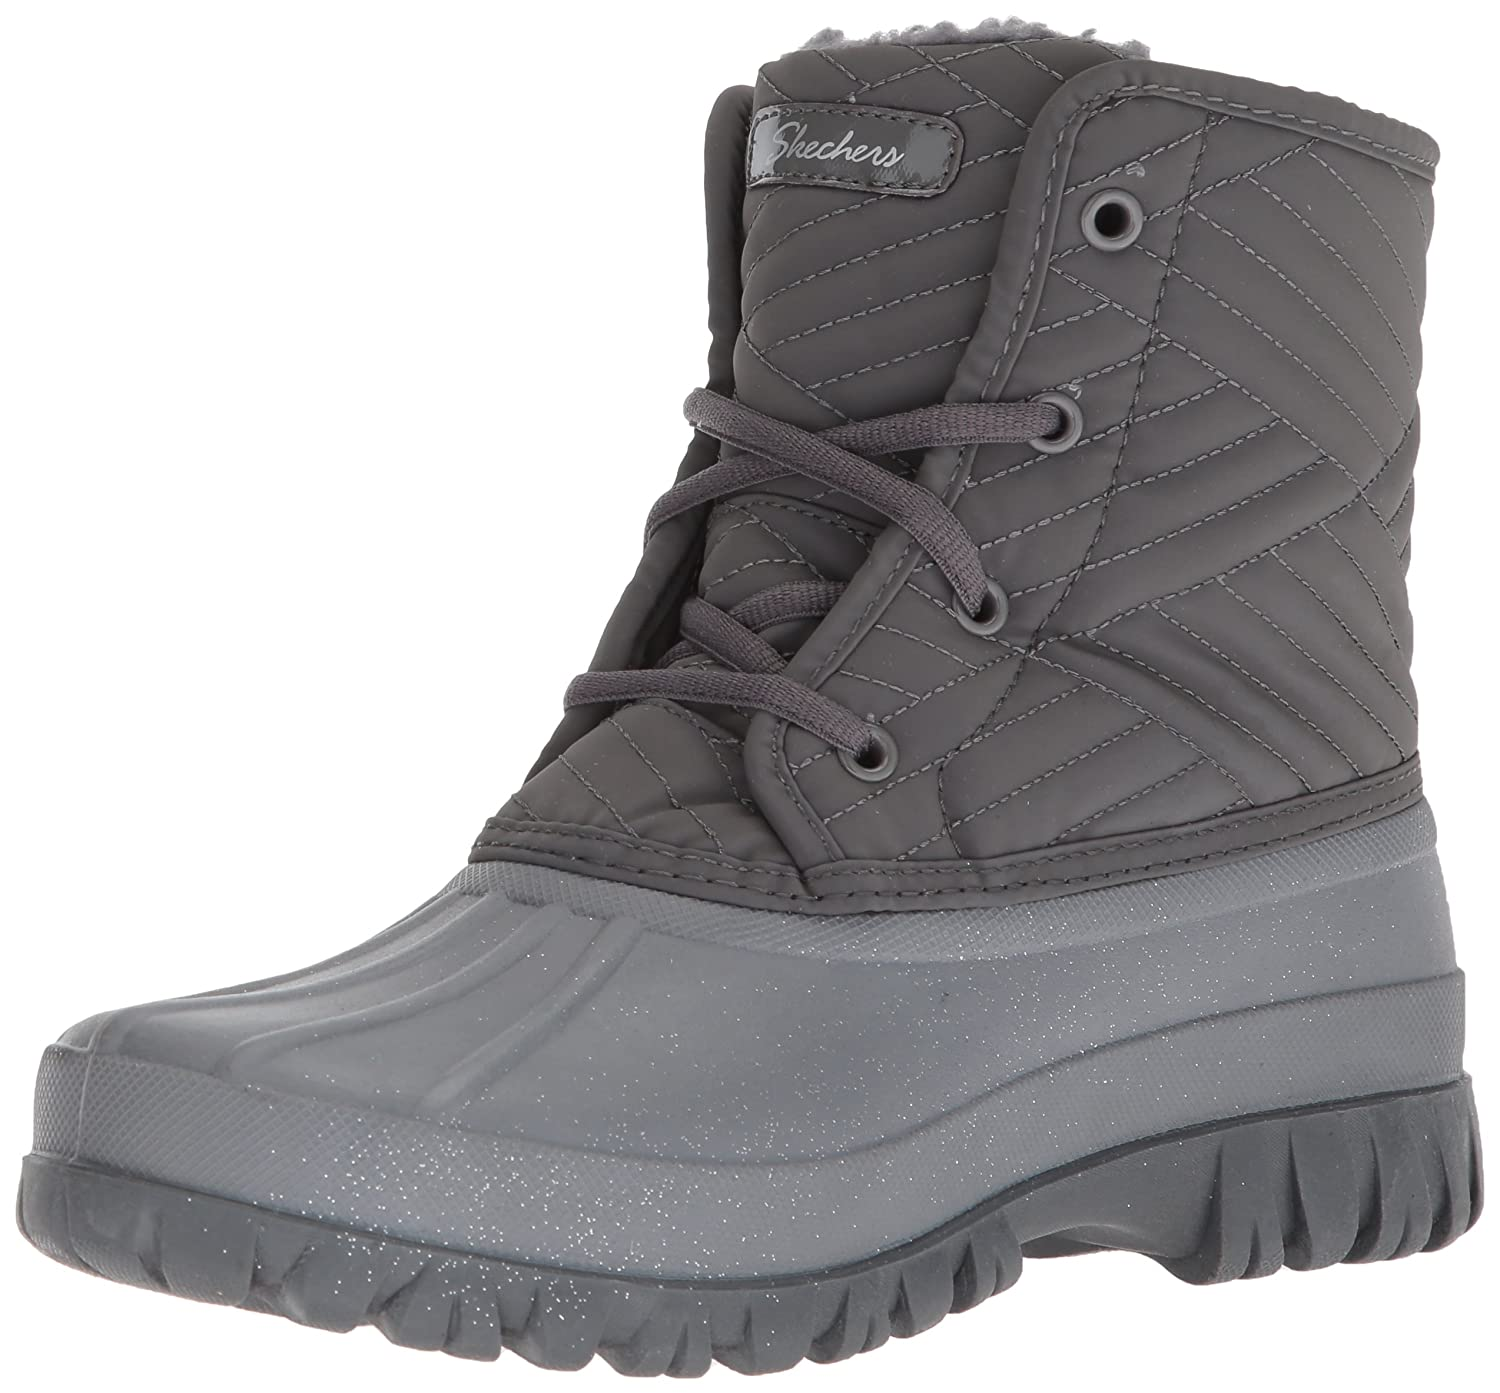 Skechers Women's Windom-Dry Spell Snow Boot B06ZZP4WS6 7 B(M) US|Charcoal